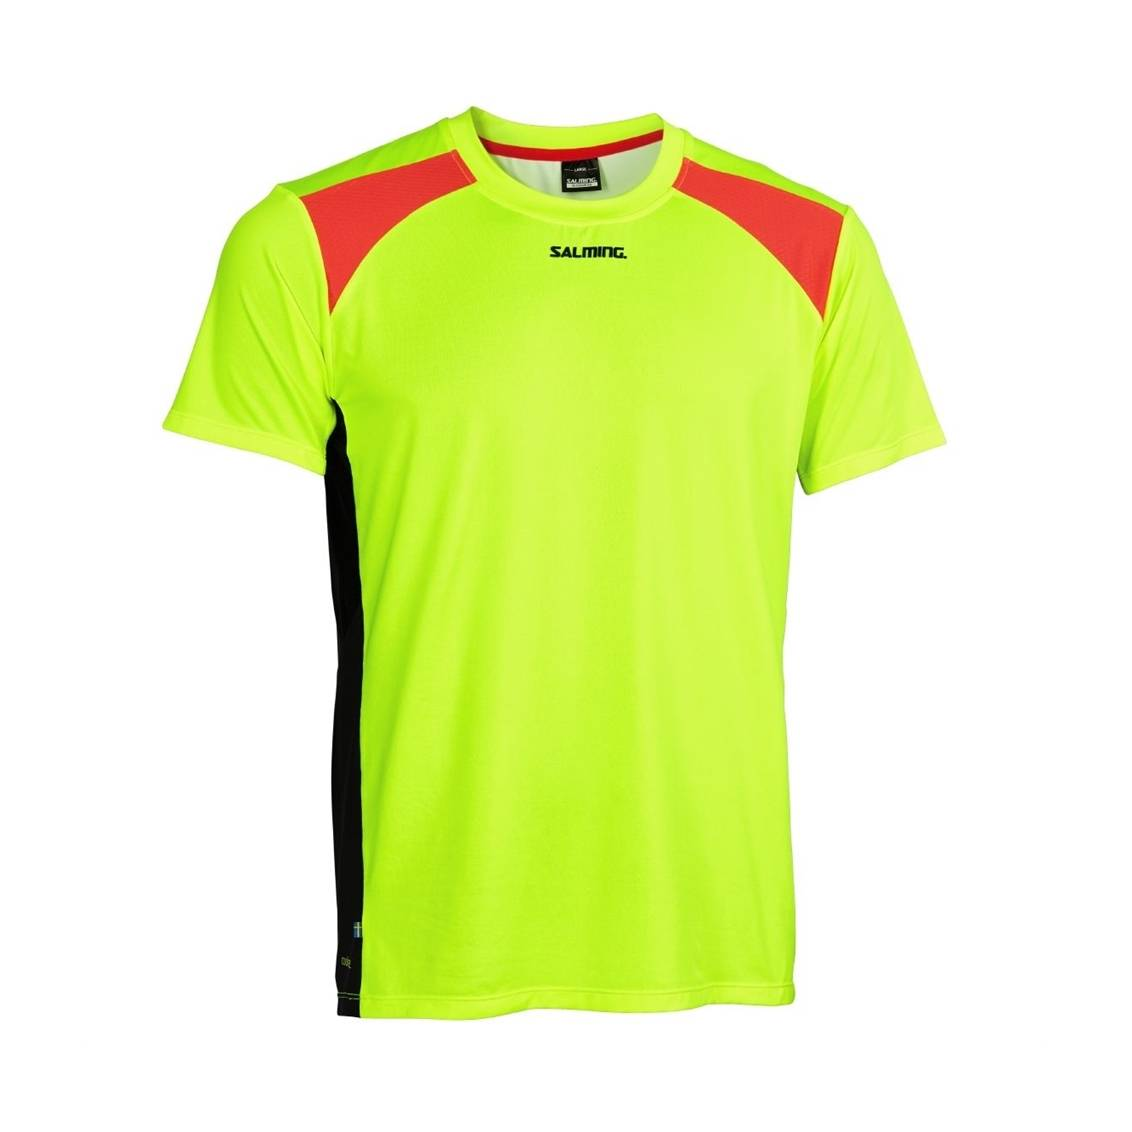 Salming Challenge Tee Yellow XL